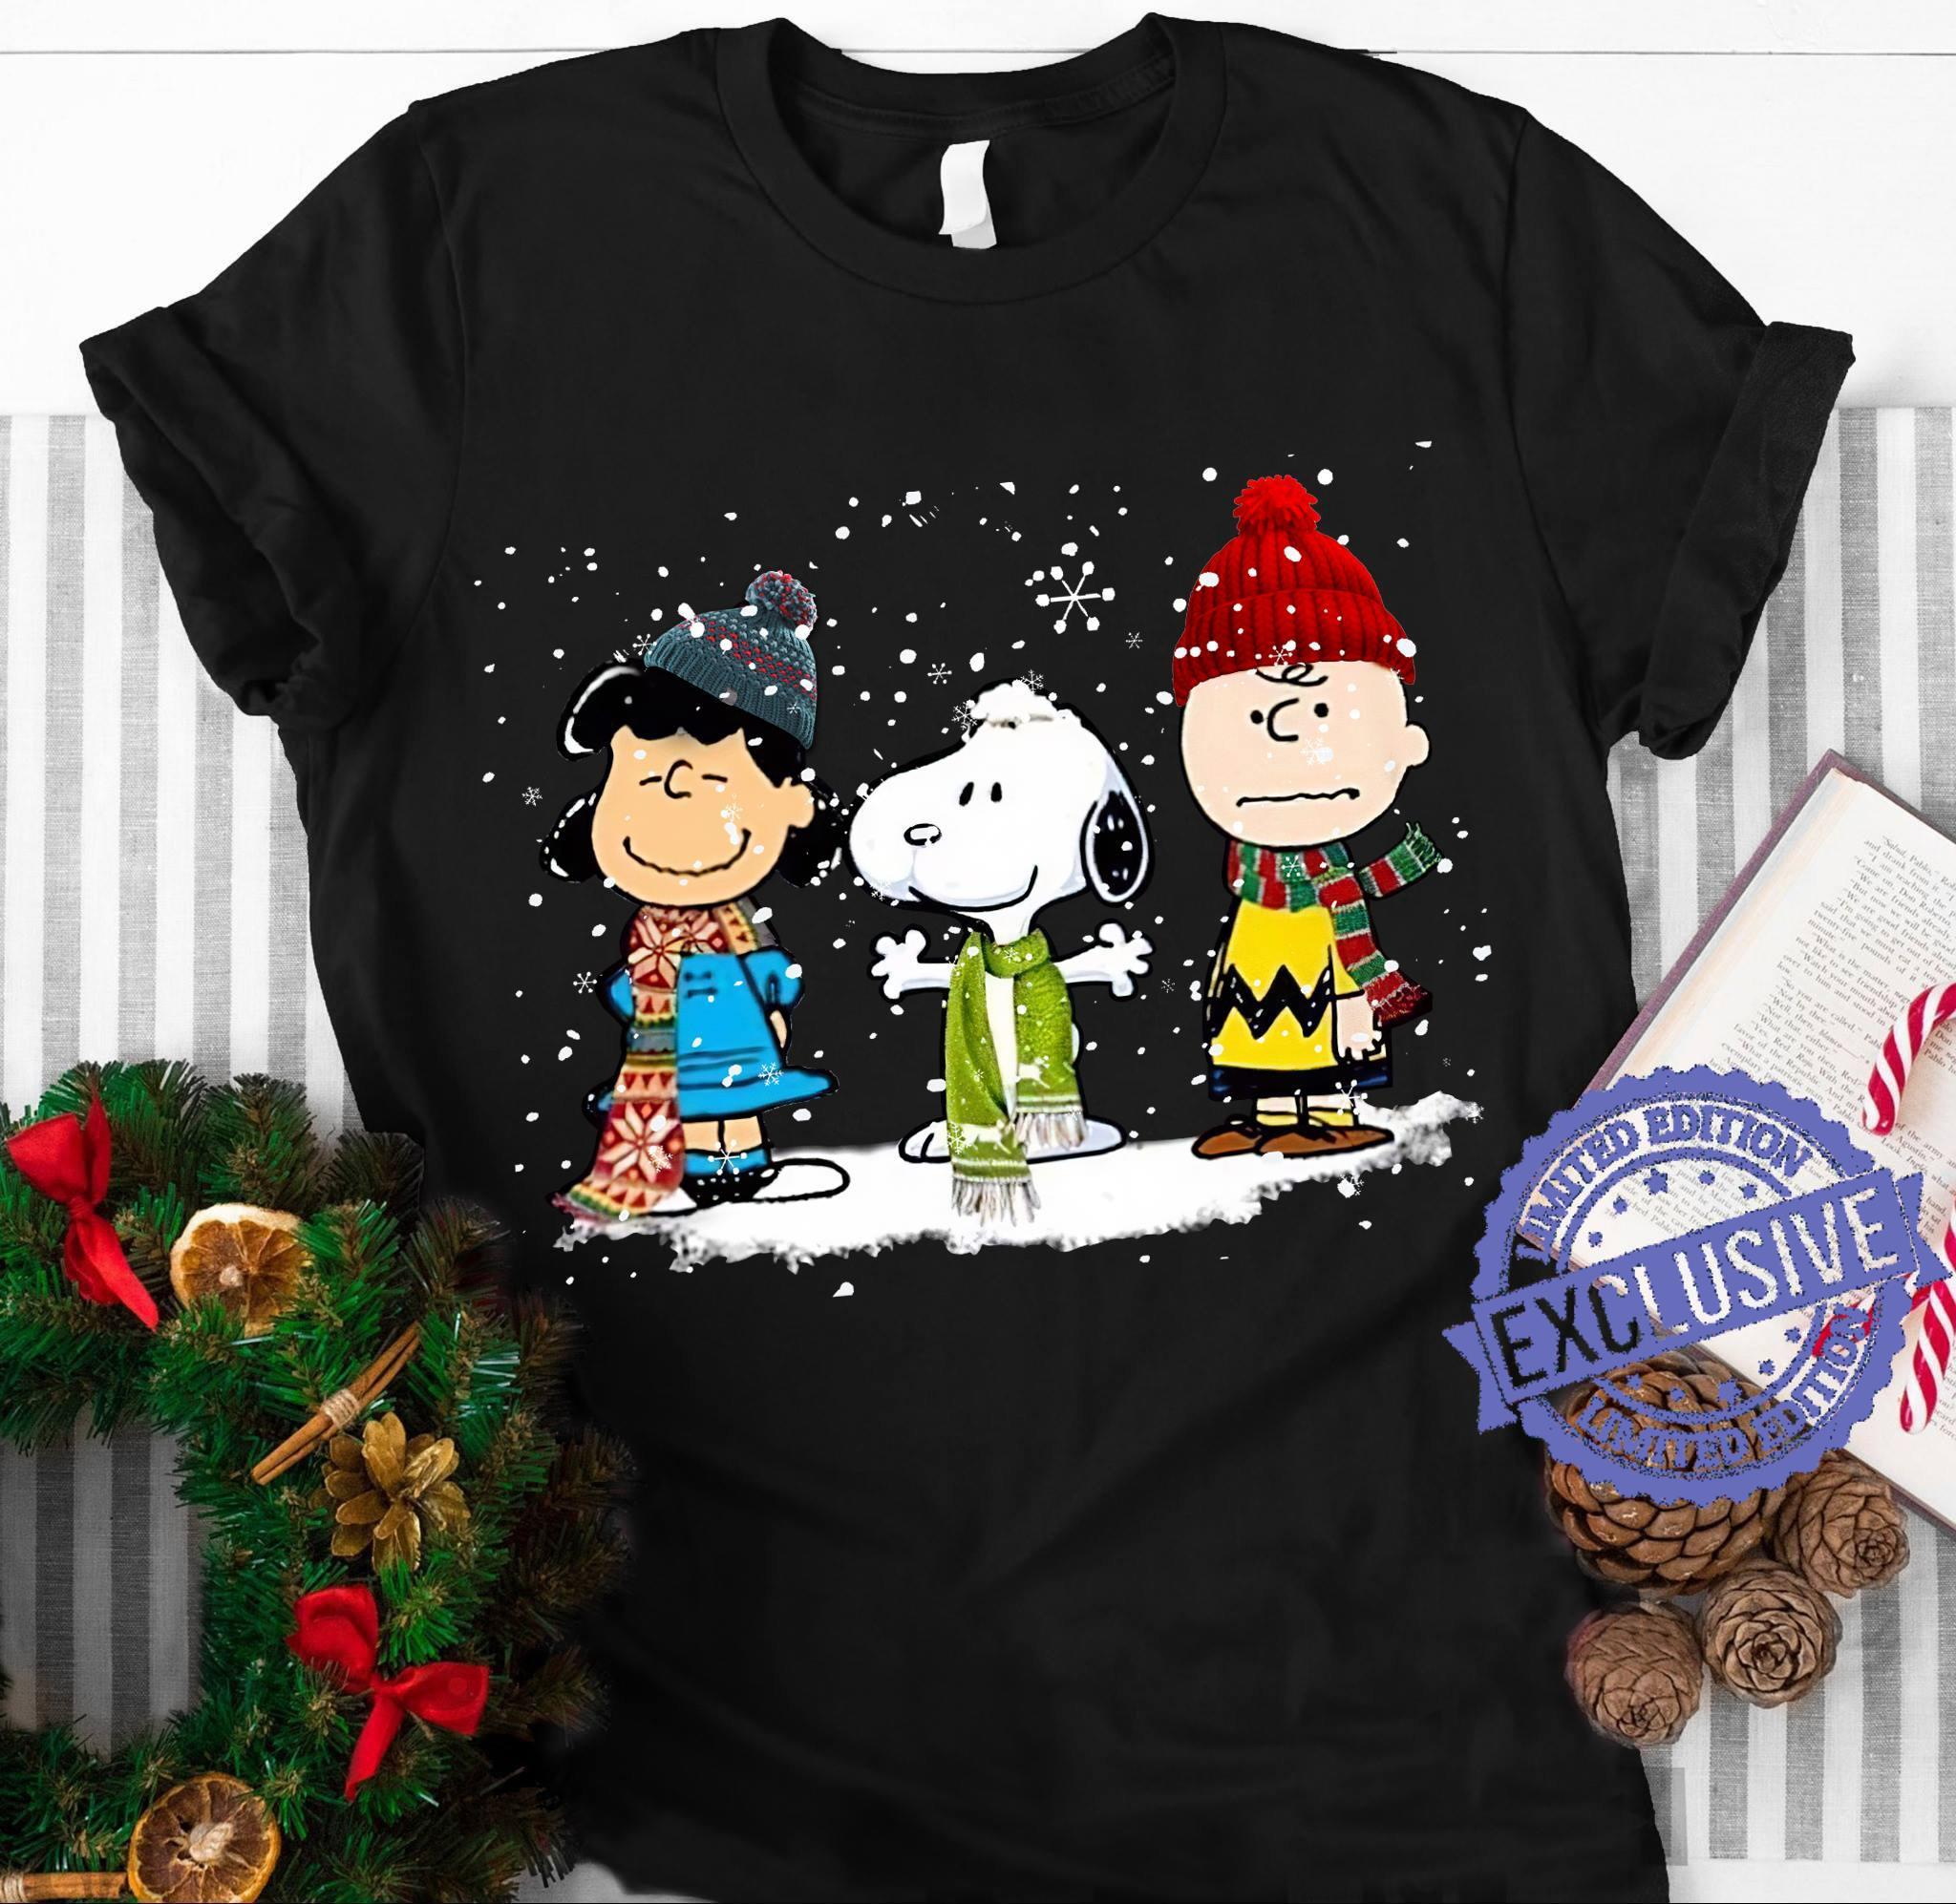 Three snoopy and charlie brown shirt